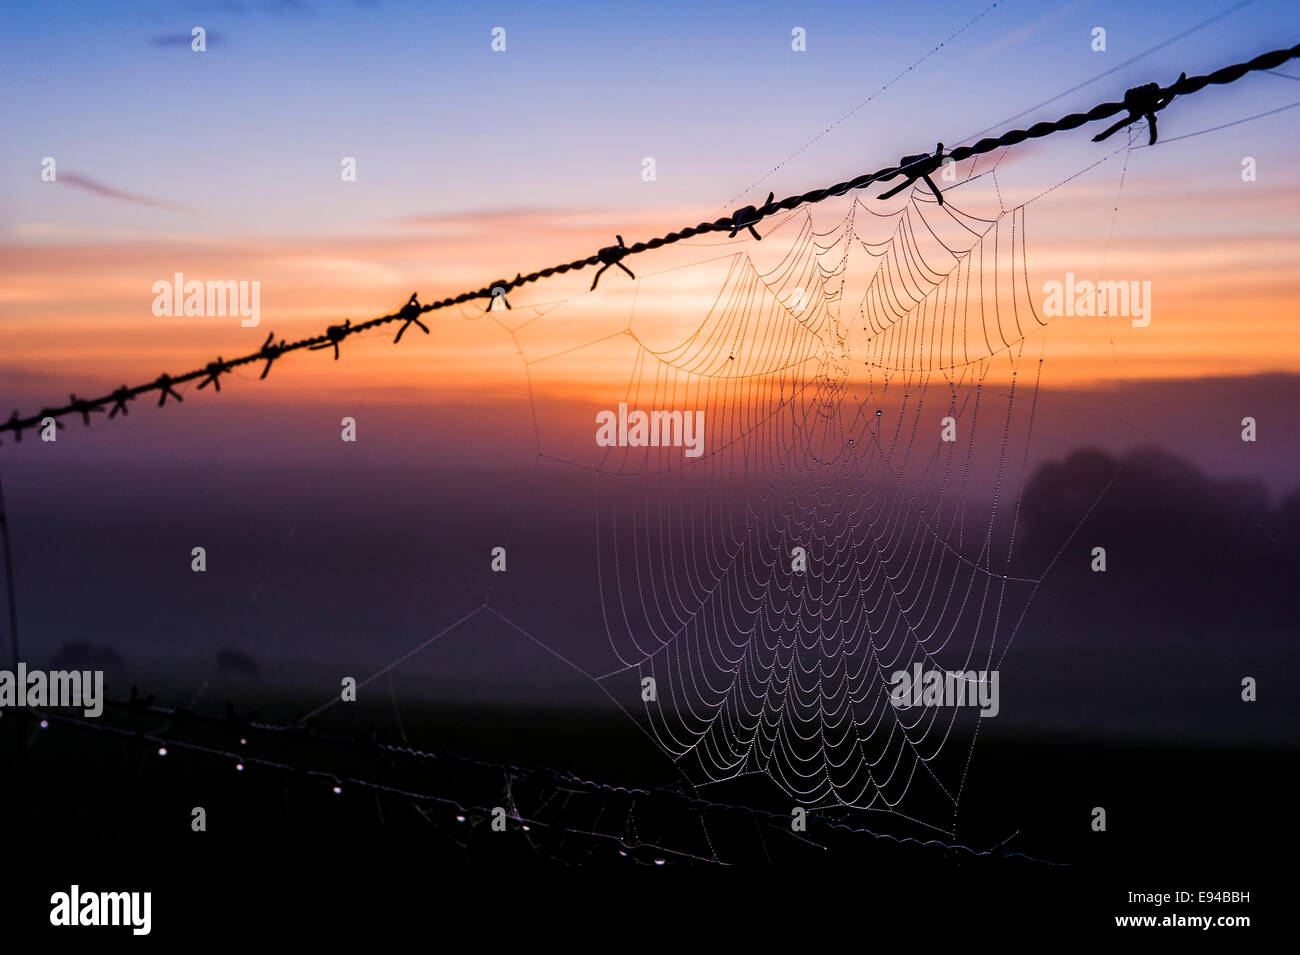 A cobweb on a barbed wire fence, against a bright dawn sky on a very misty morning. - Stock Image